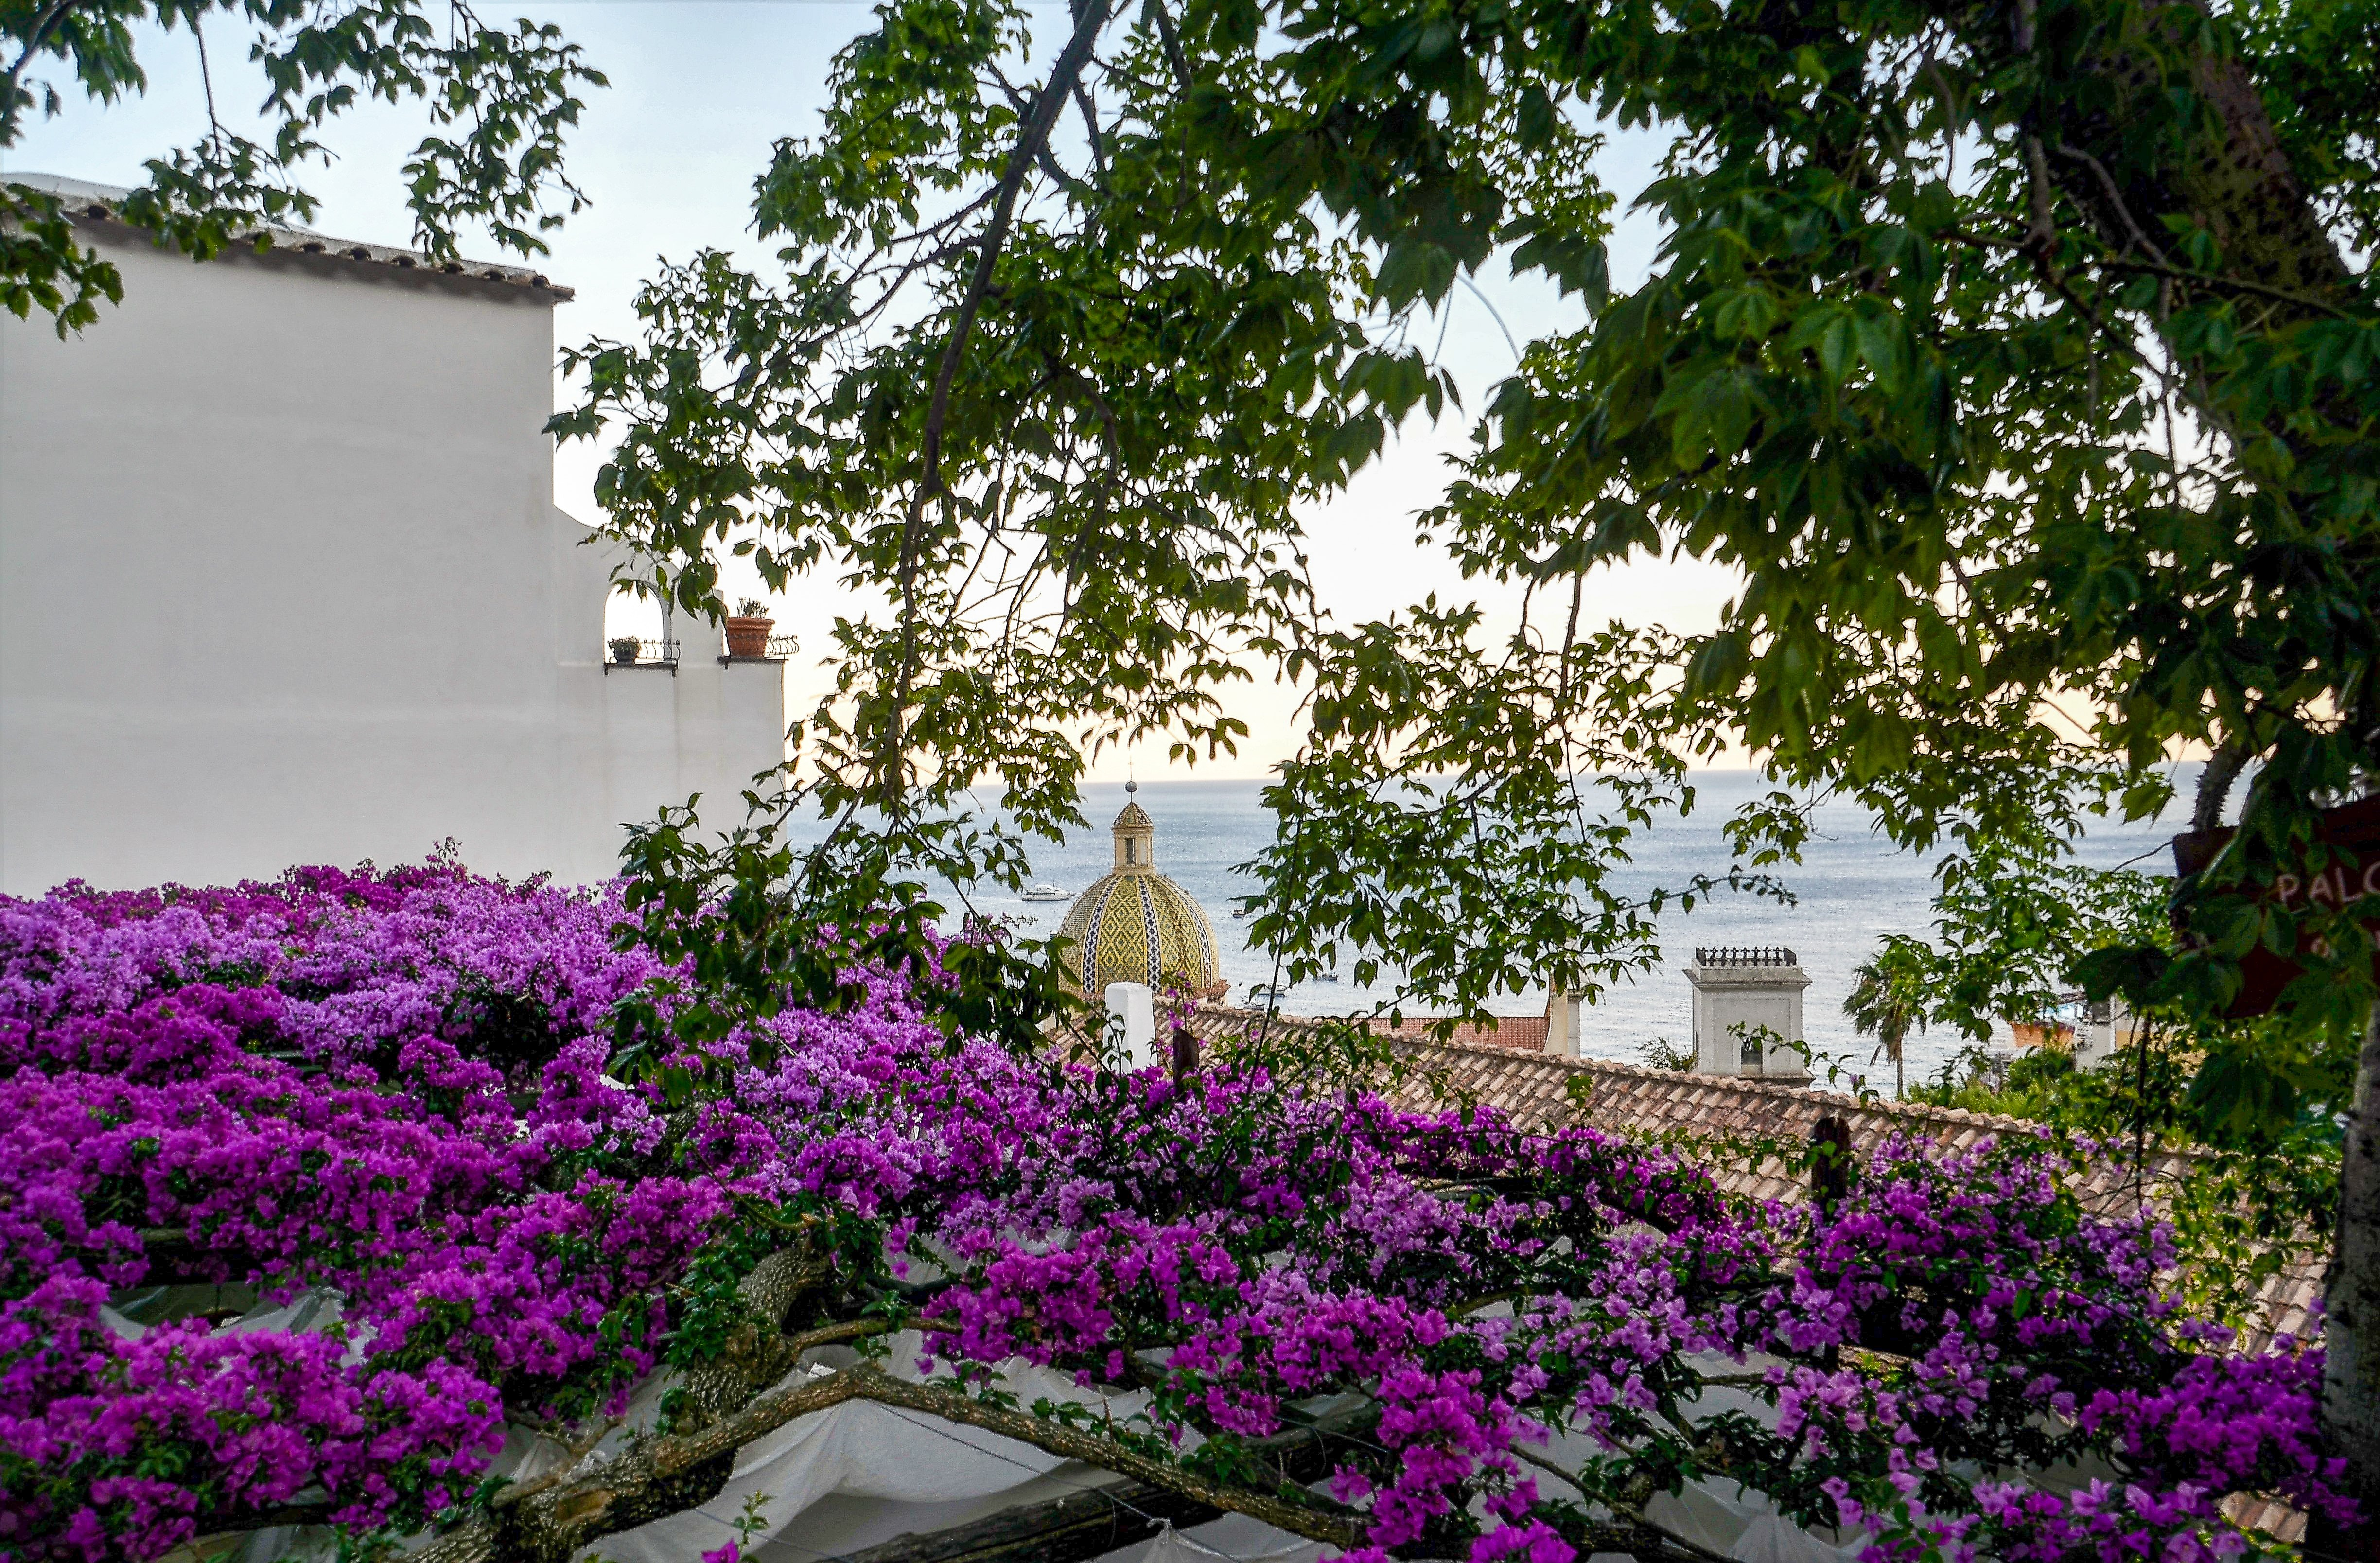 Photography of Purple Flowers, Architecture, Ocean, Village, View, HQ Photo